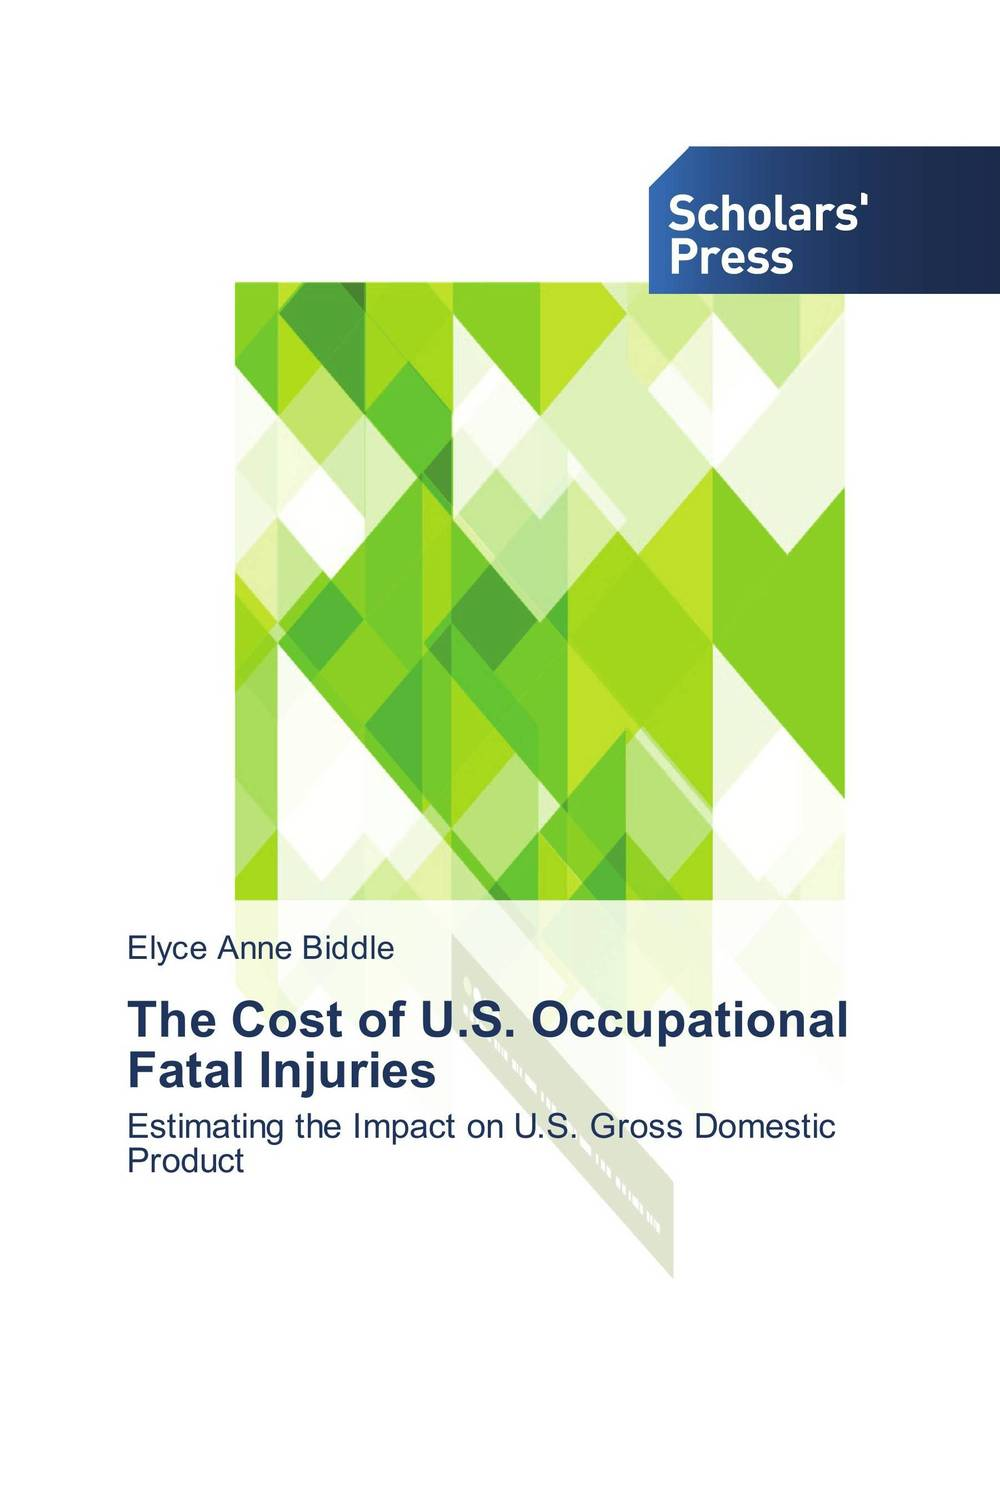 The Cost of U.S. Occupational Fatal Injuries arlene walker the application of the psychological contract to occupational safety